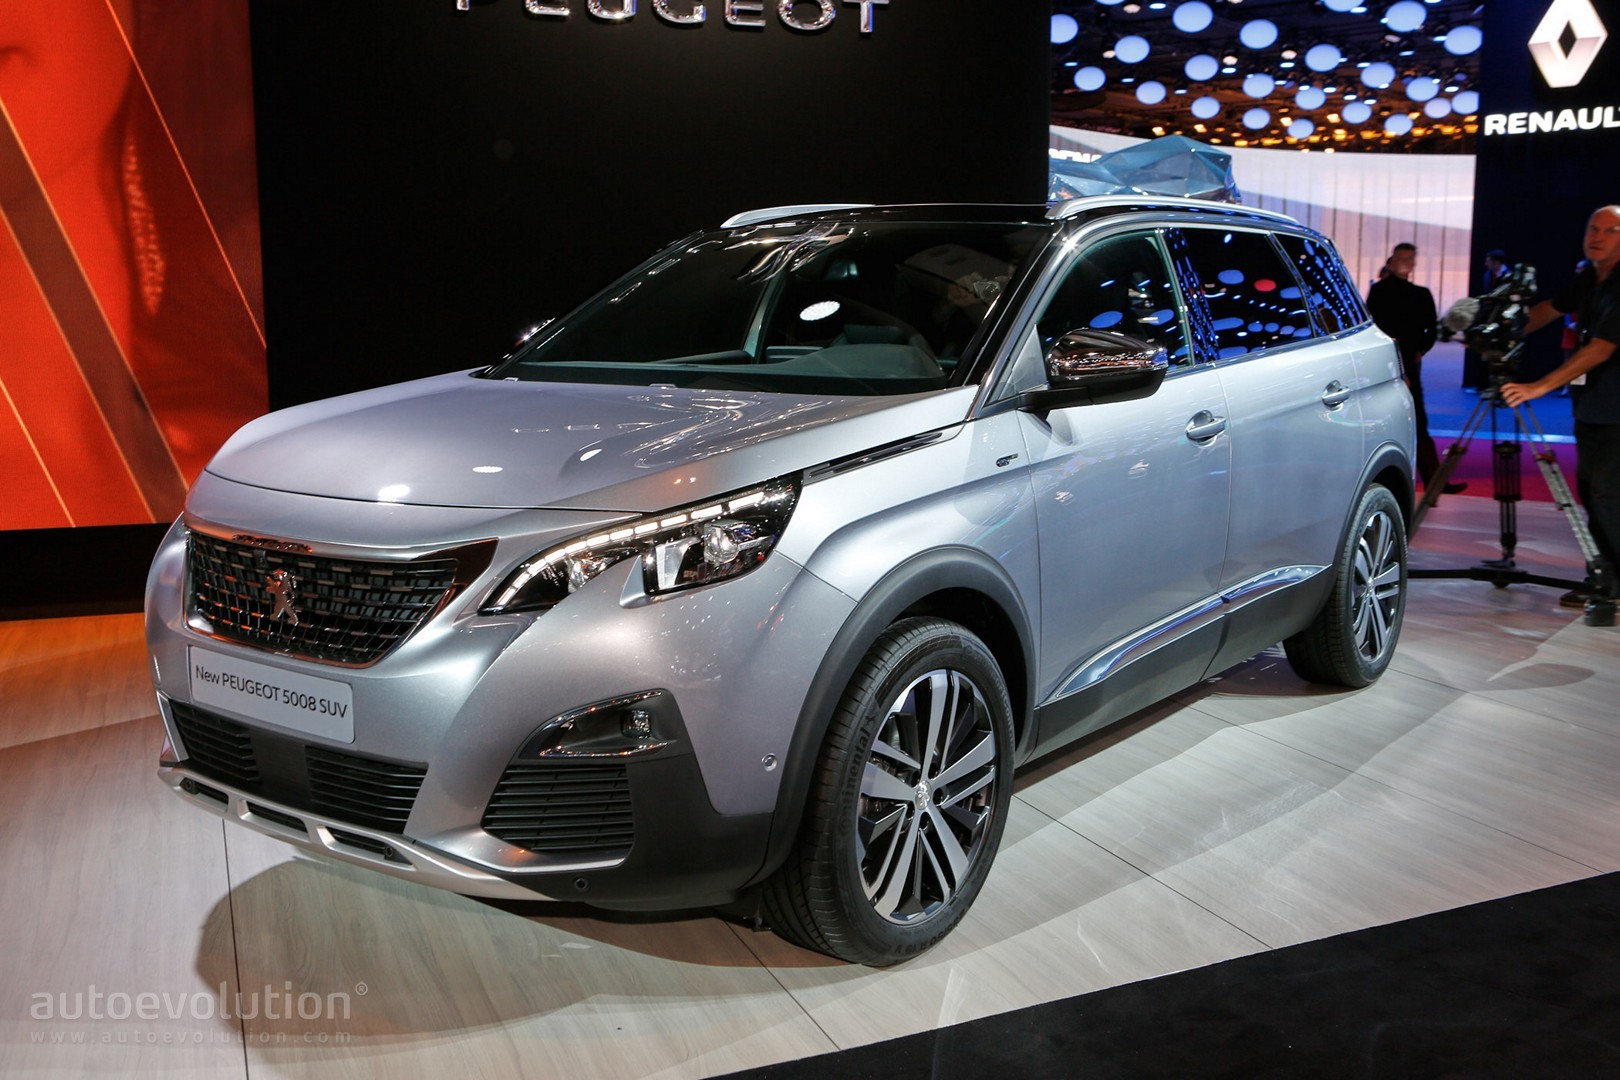 All New Peugeot 5008 Is A 7 Seater Crossover In Paris Autoevolution